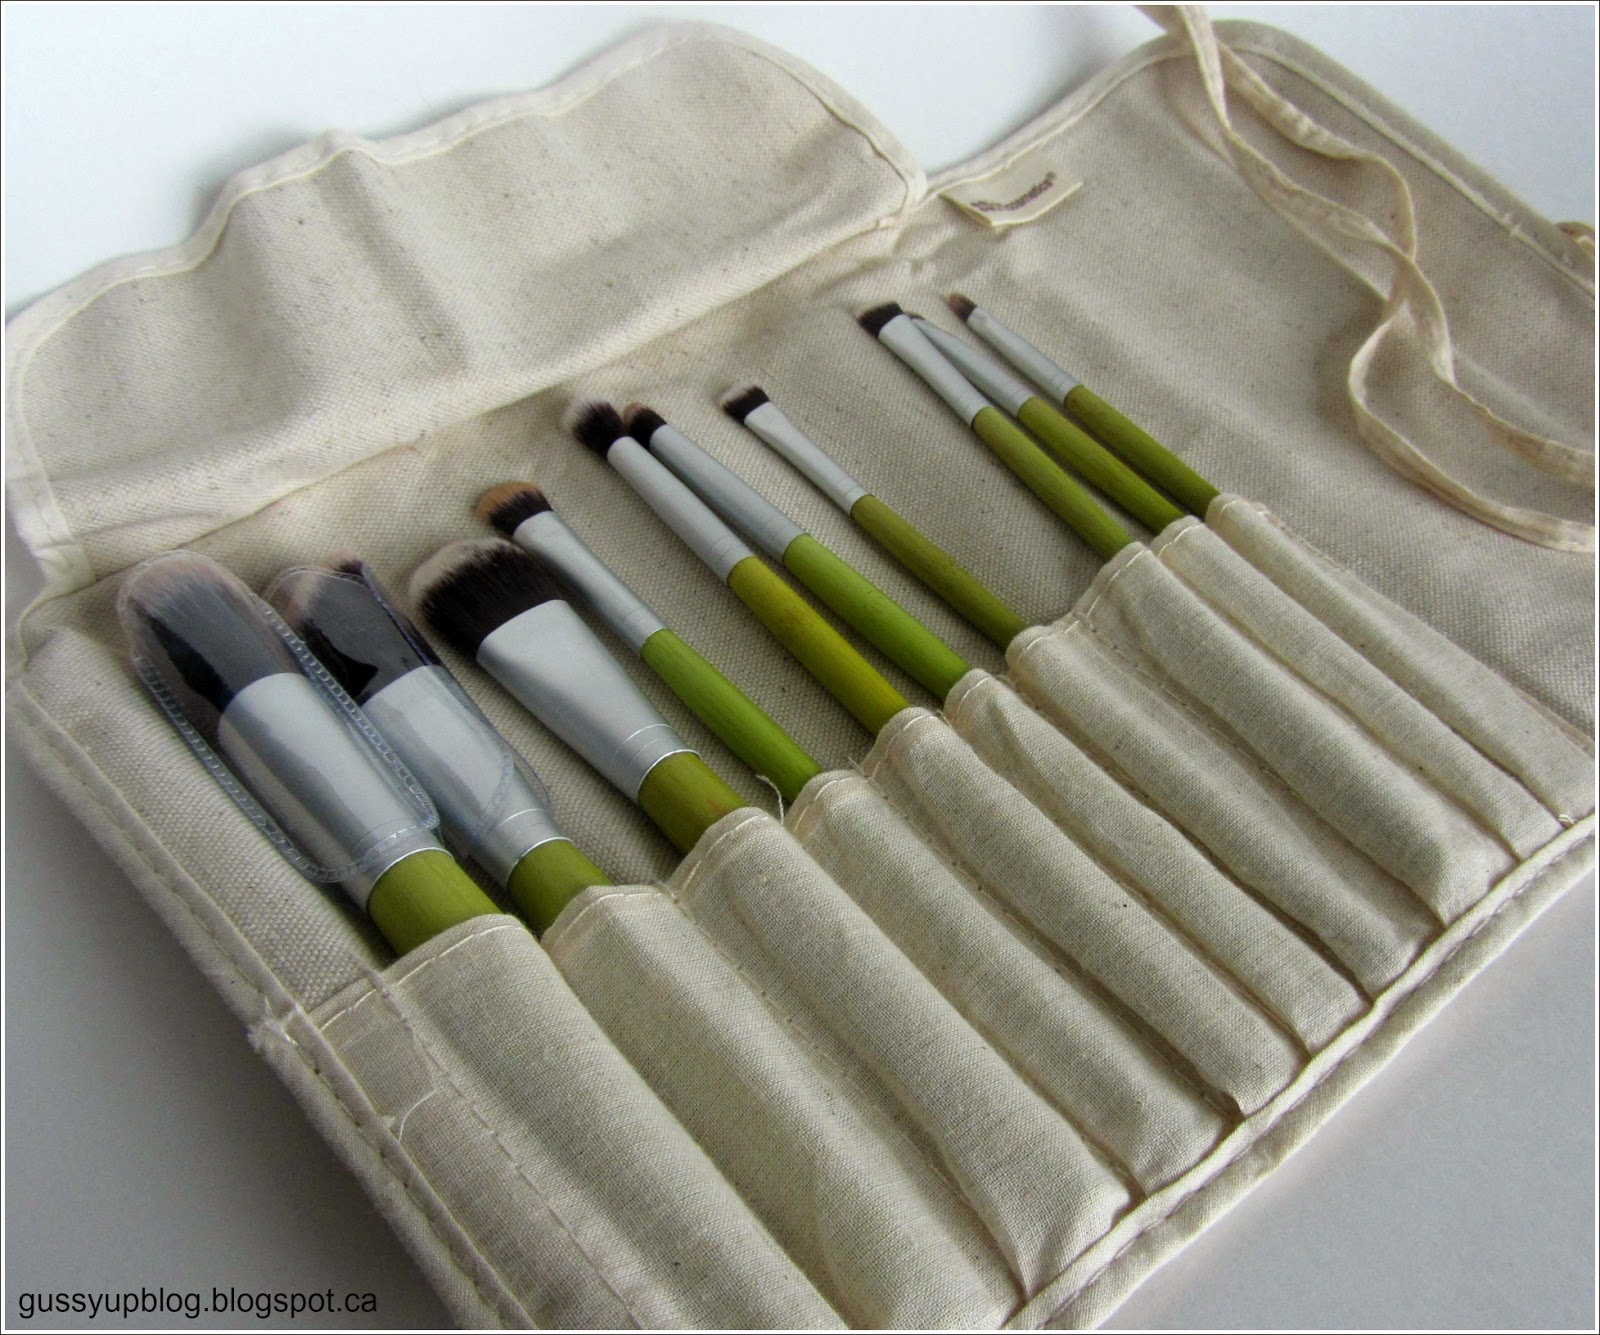 Review of BH Cosmetics 10 pcs Eco Brush Set featuring It Cosmetics Naturally Pretty Vol. 1 Matte Palette